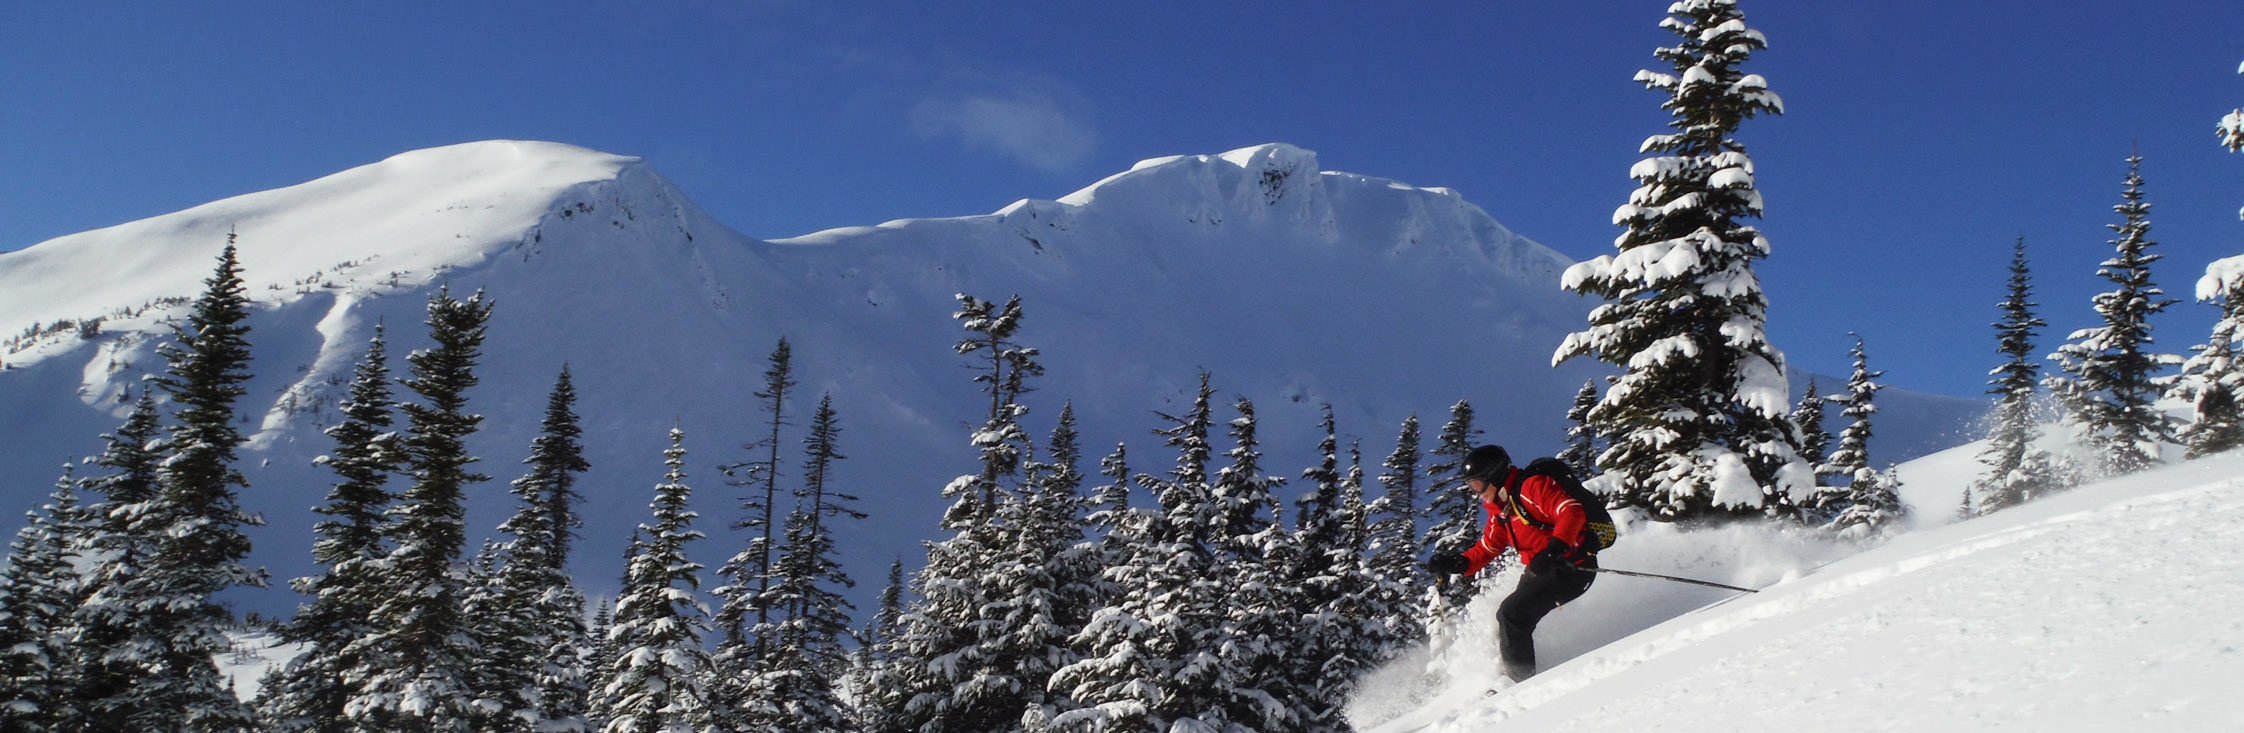 heliskiing_small_skeena-skier-forest-mountains